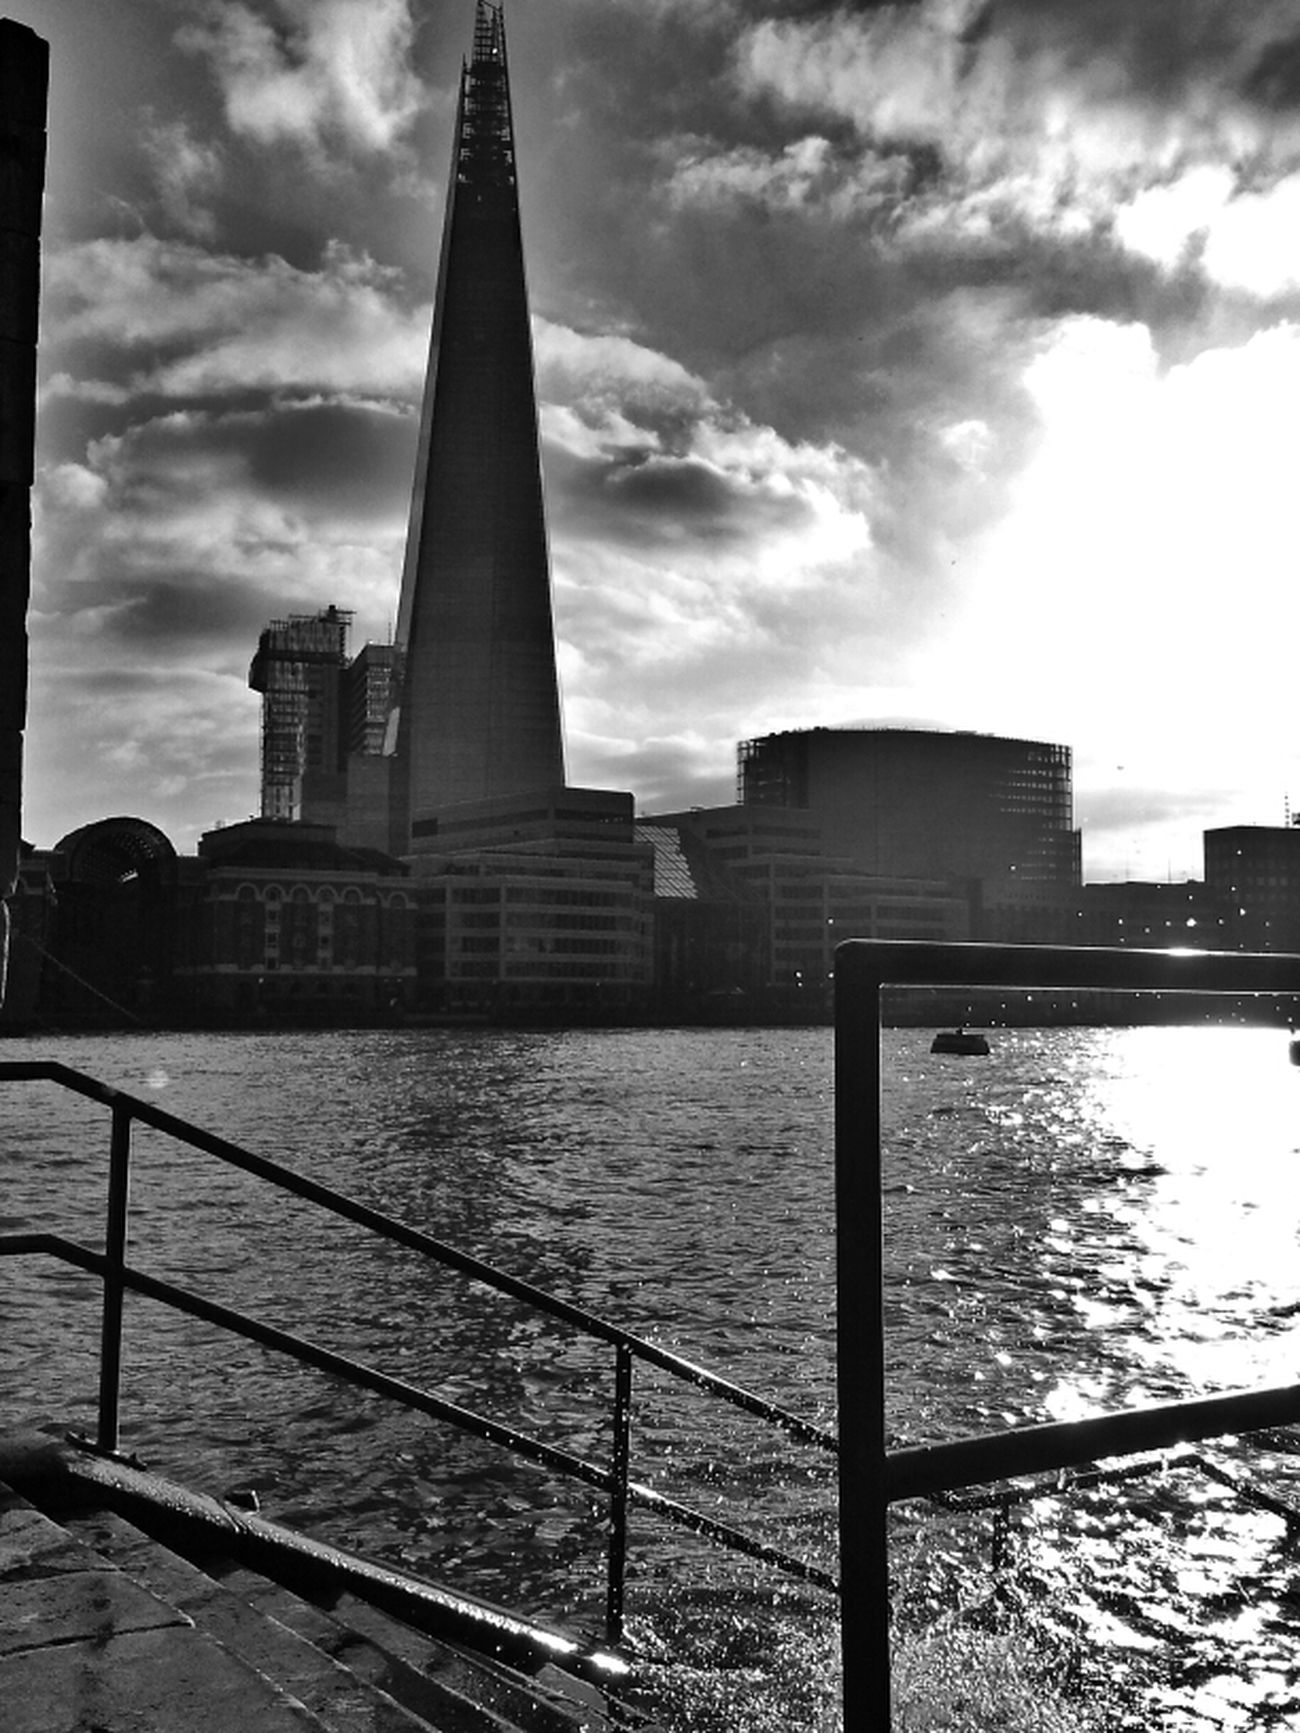 High tide Blackandwhite London Water_collection Eye4photography  Hot_shotz Bnw_society Bw_collection